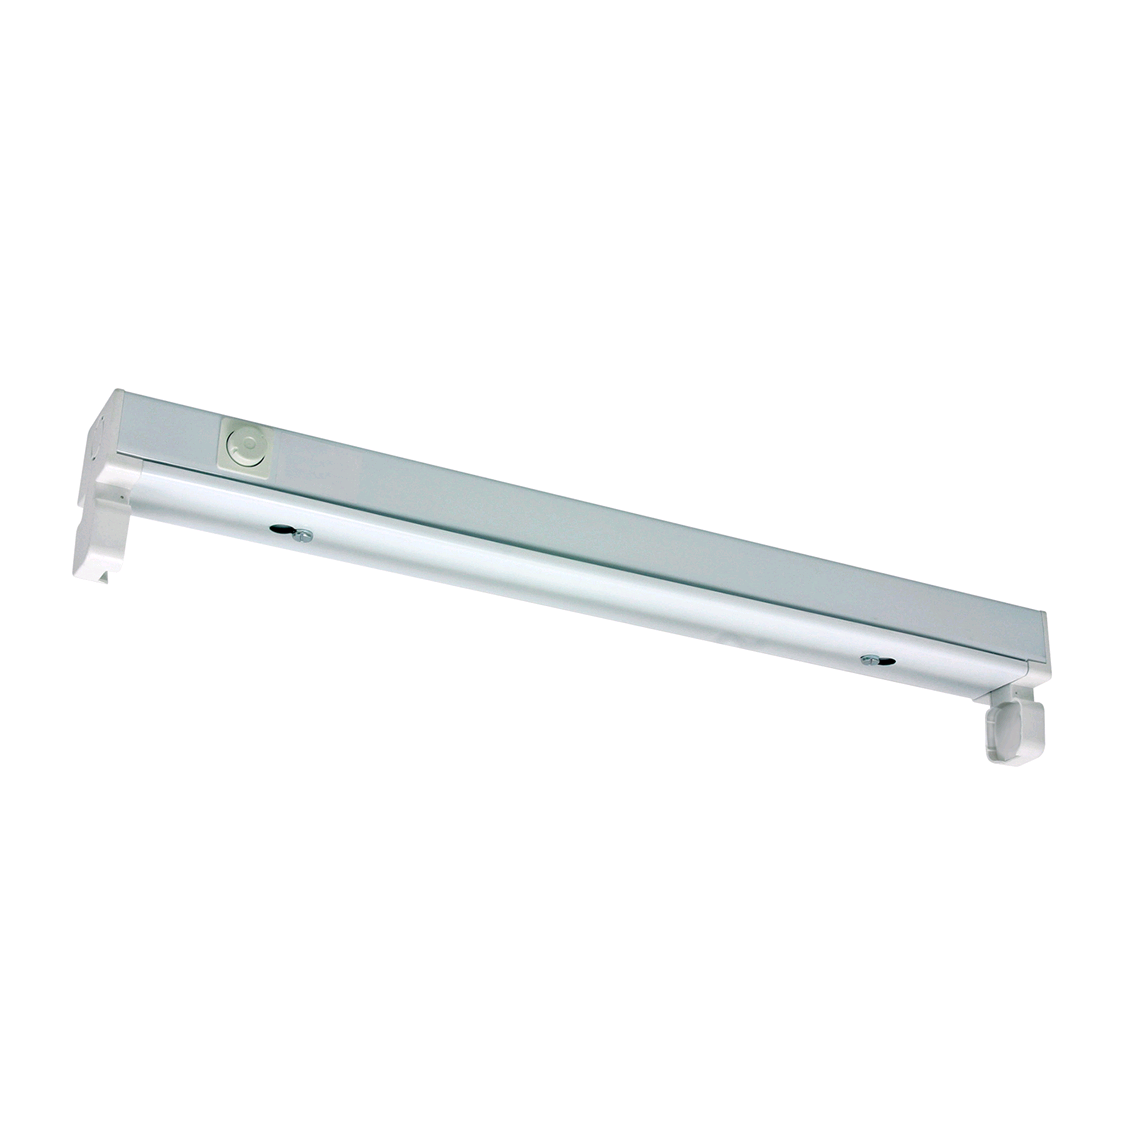 CED Empty Batten Housing For LED Tubes 6ft